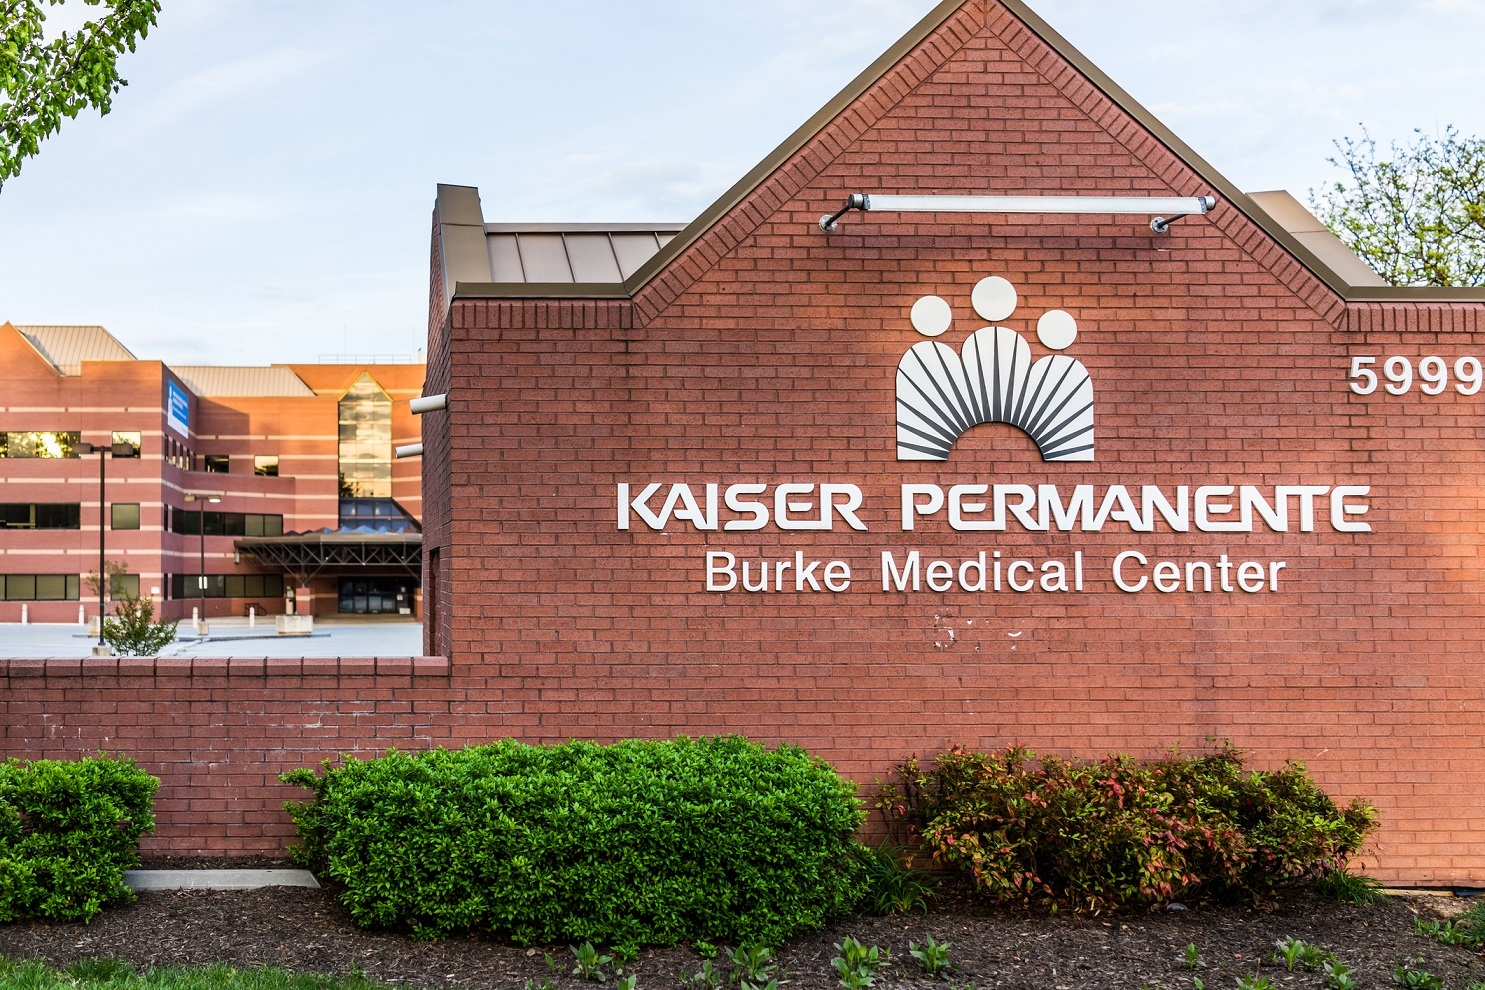 Kaiser Permanente at Burke Medical Center sign on brick wall